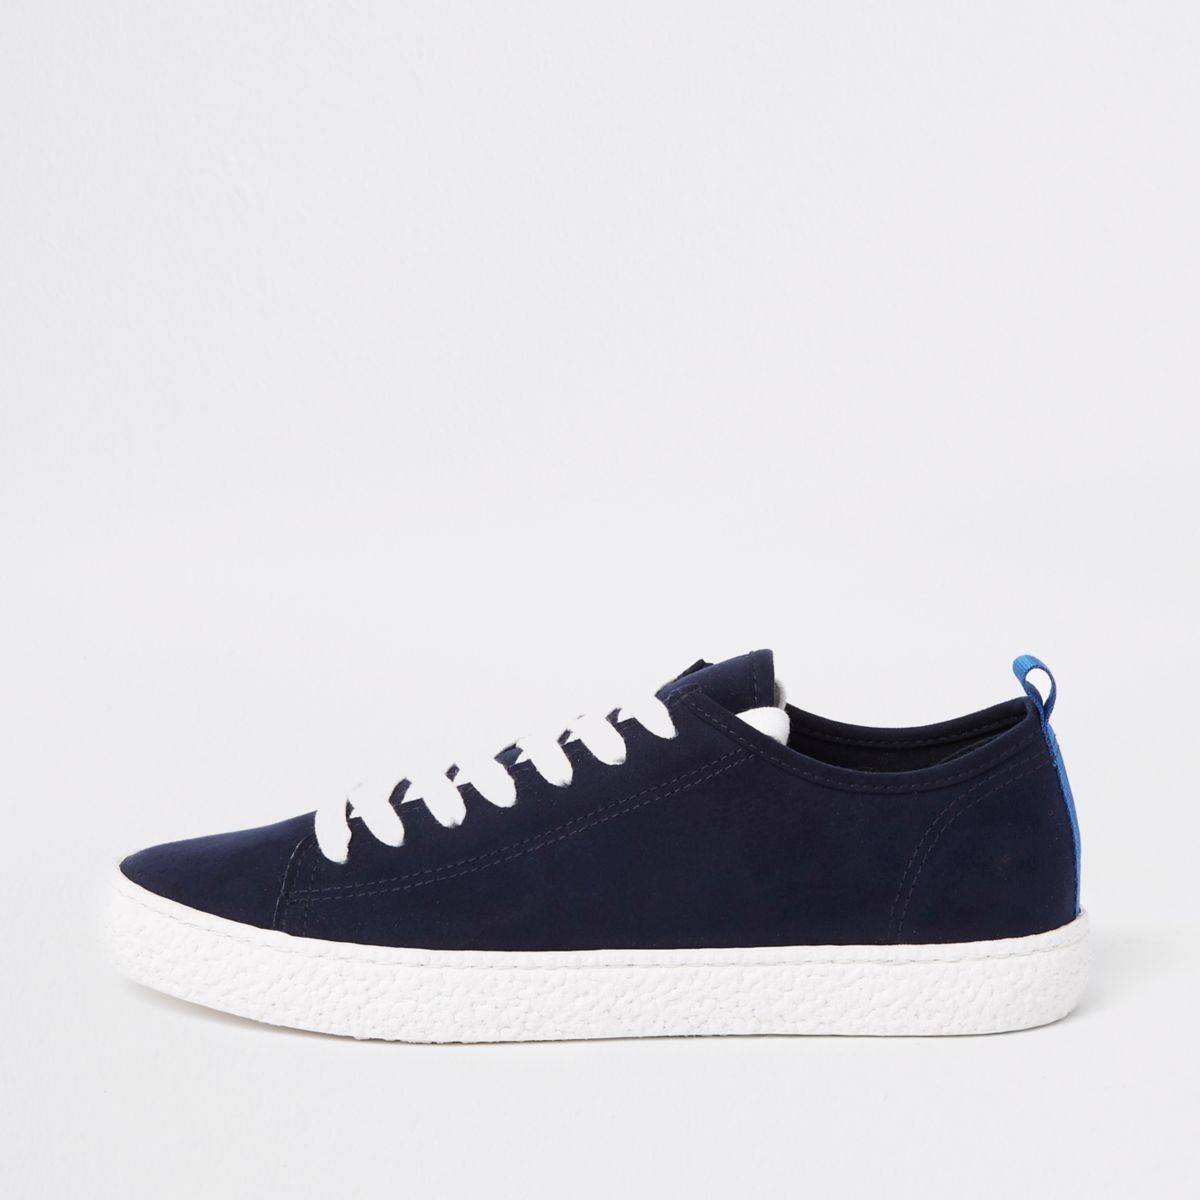 Navy textured sole lace up sneaker